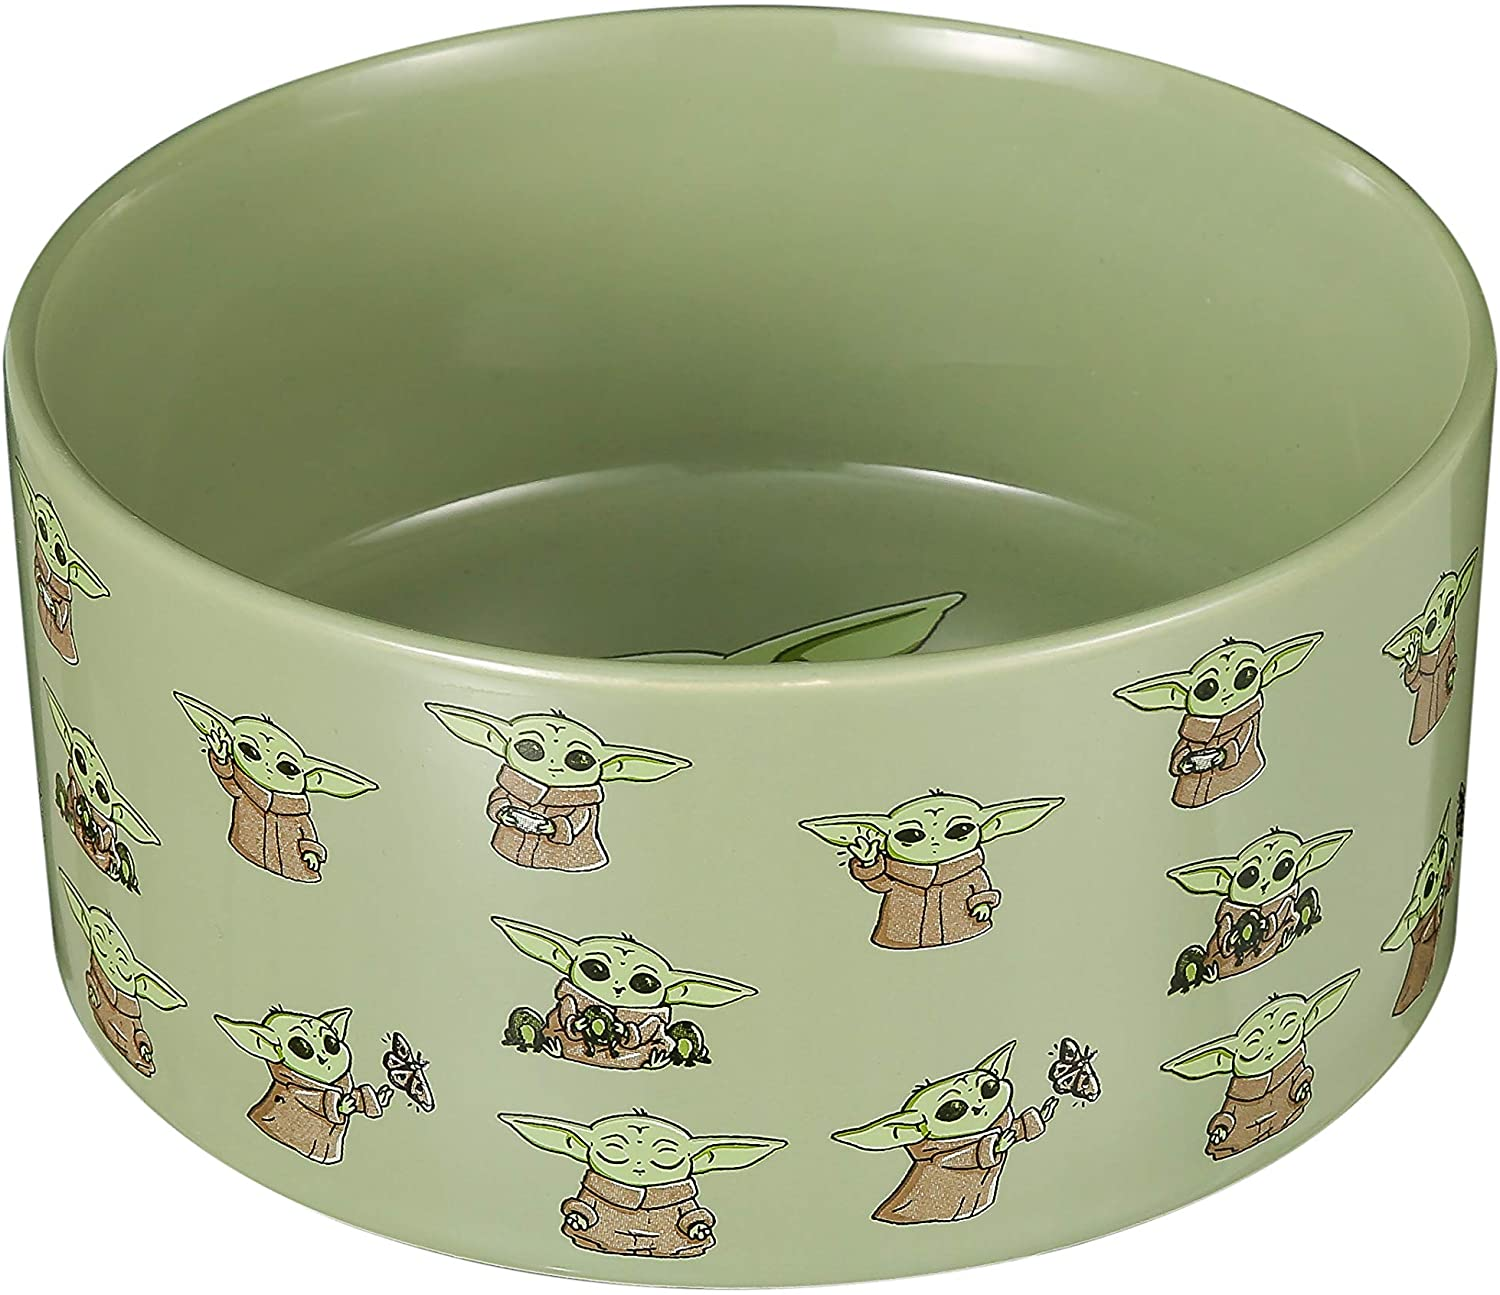 STAR WARS The Mandalorian Ceramic Dog Bowl, 3.5 Cups | Meal Time | Dog Water Bowl for Dry Food or Wet Food for All Dog